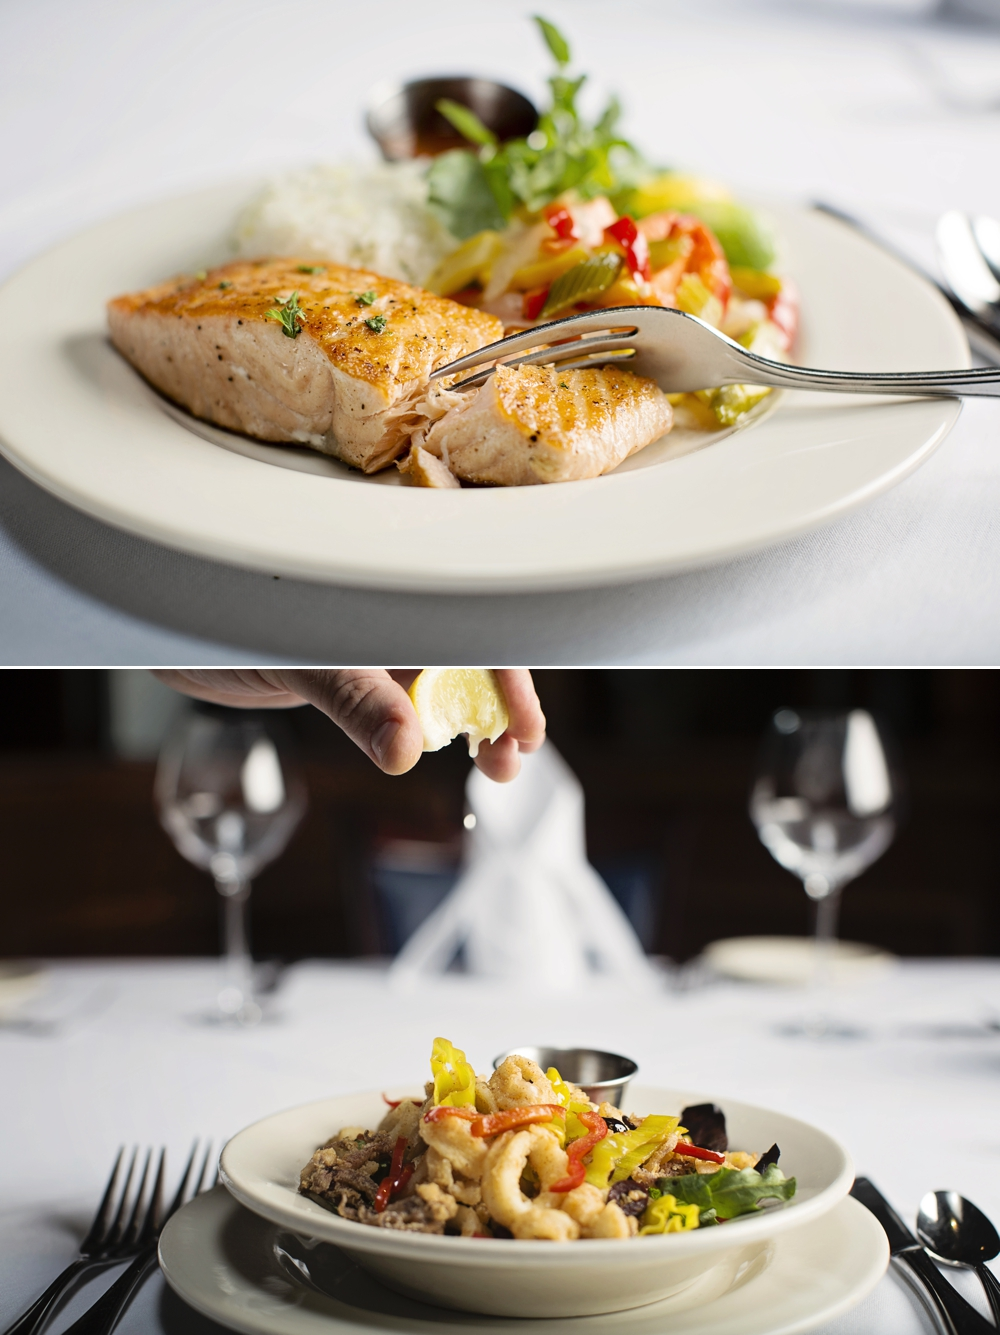 For the best in food photography, call a commercial photographer in Louisville, KY.